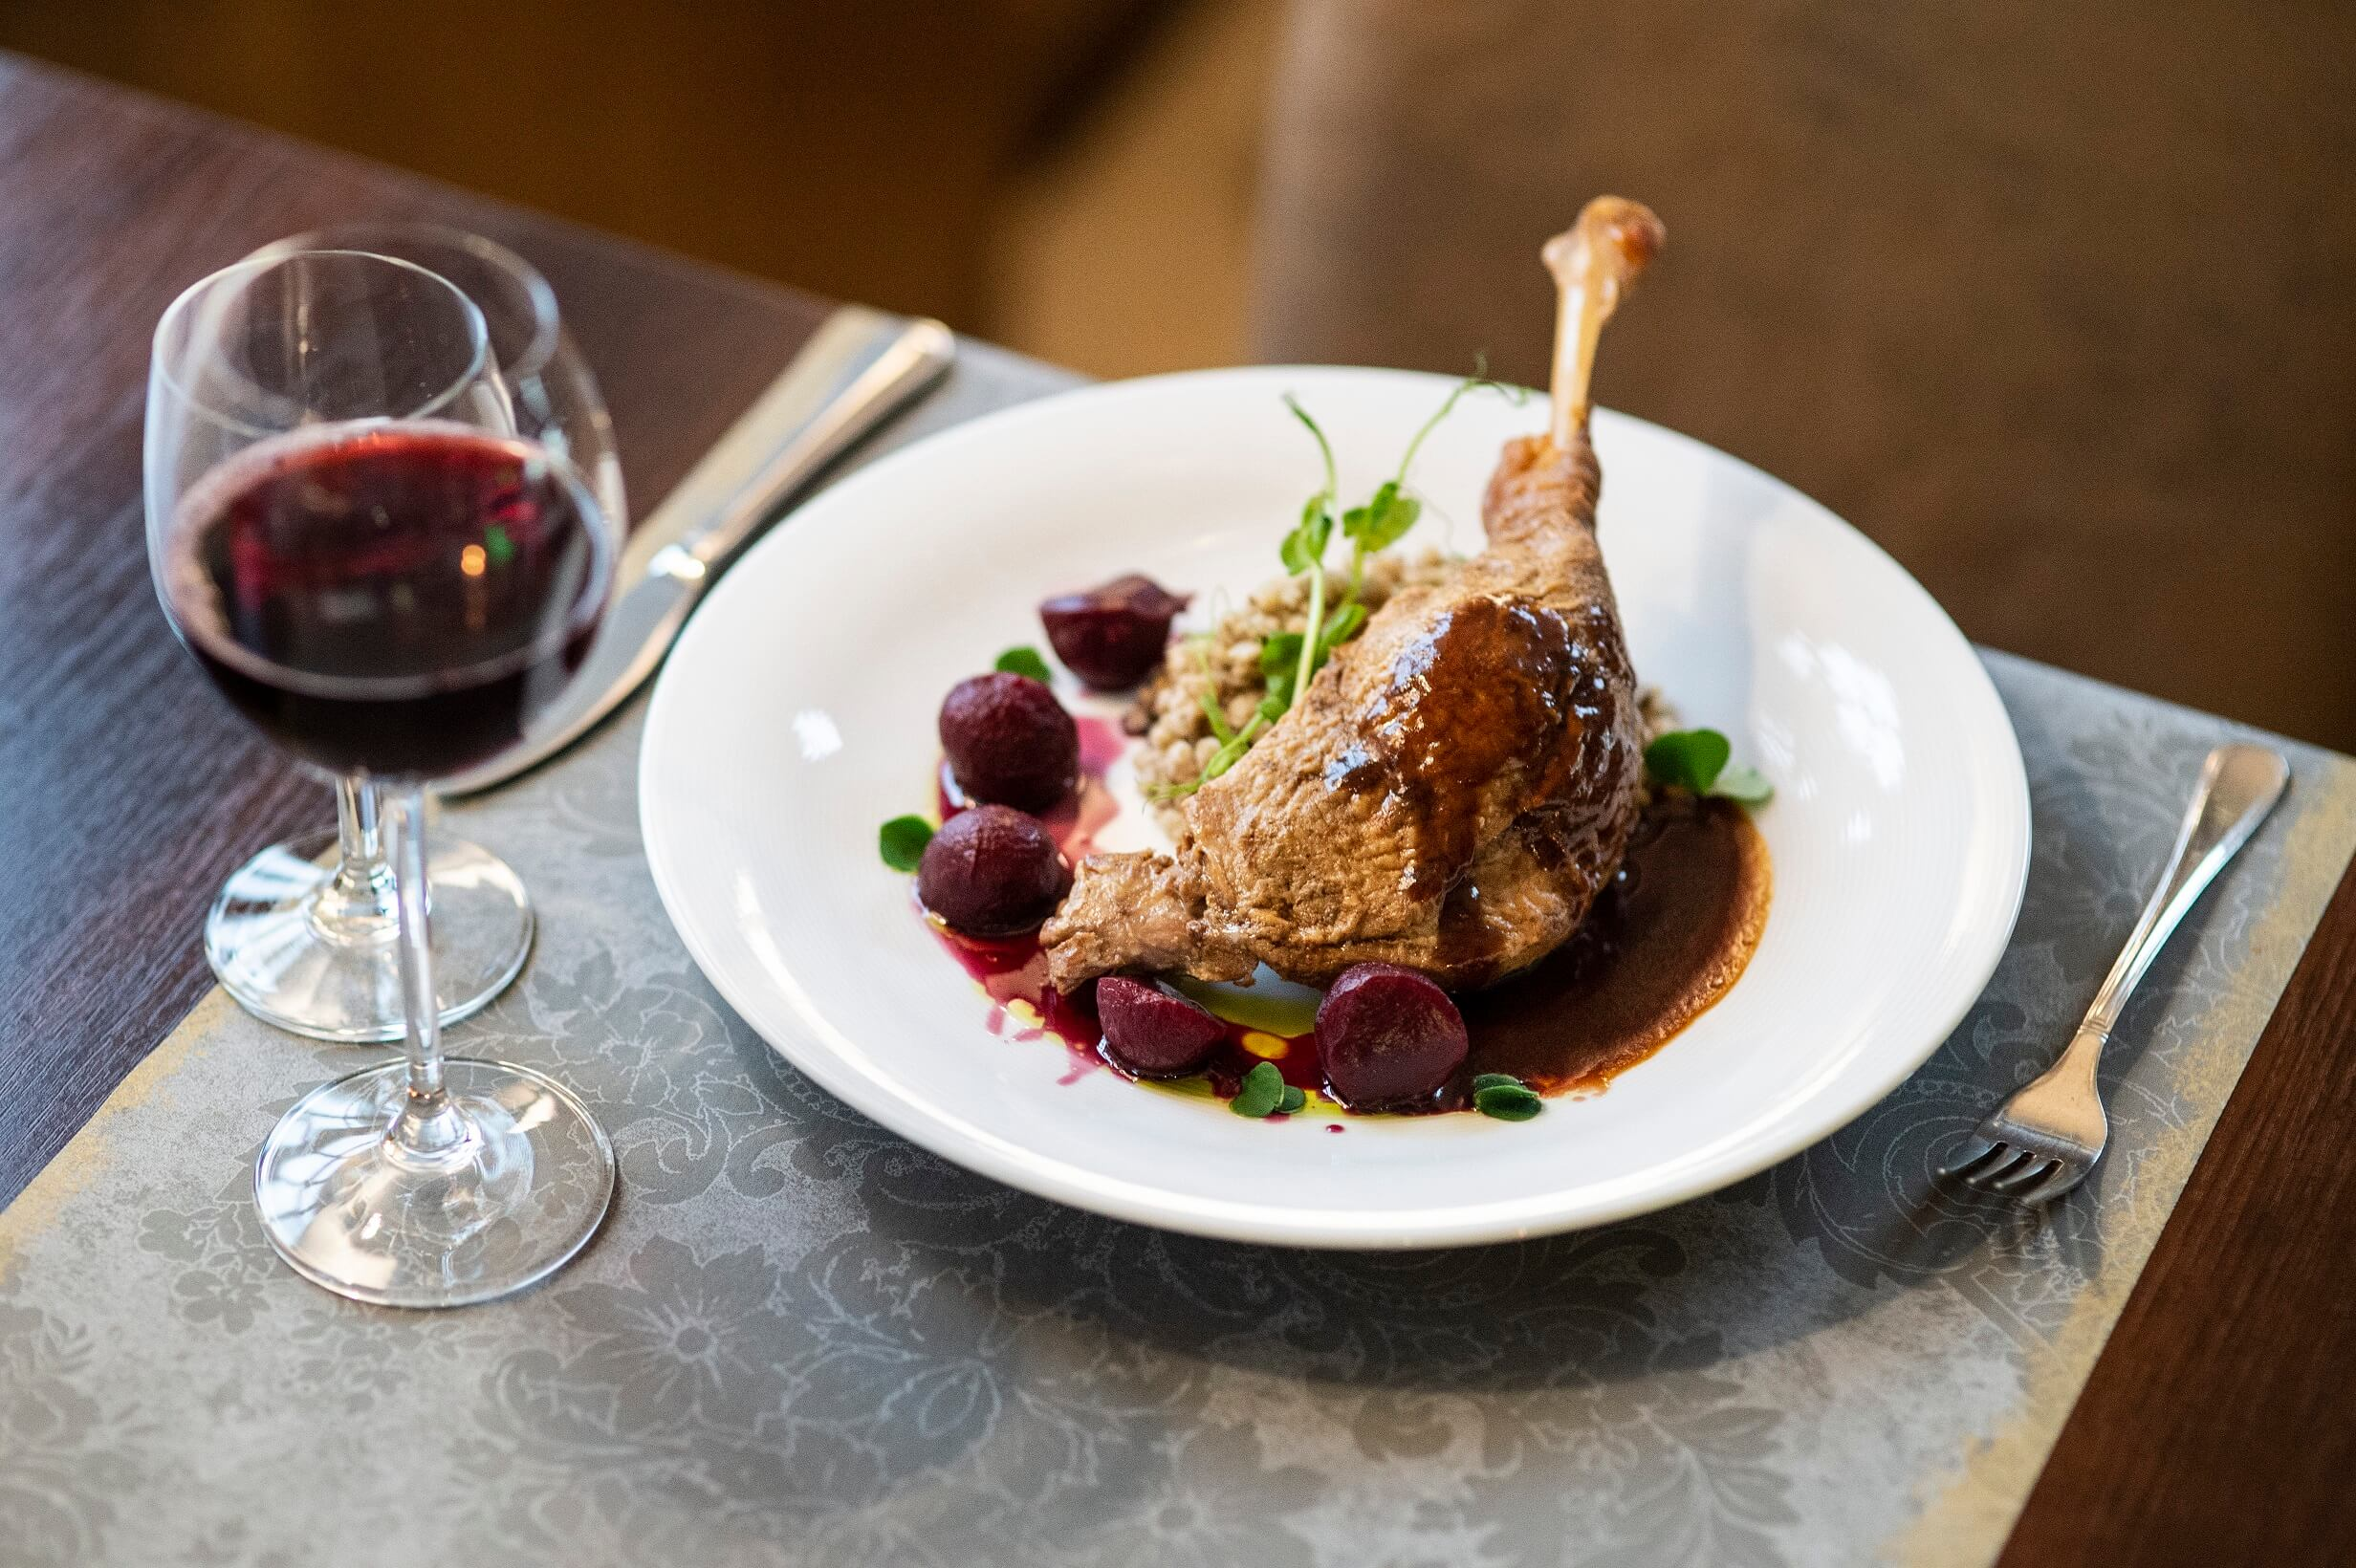 Goose 24 - Pomeranian goose meat for St. Martin's Day – the best places to order goose delights